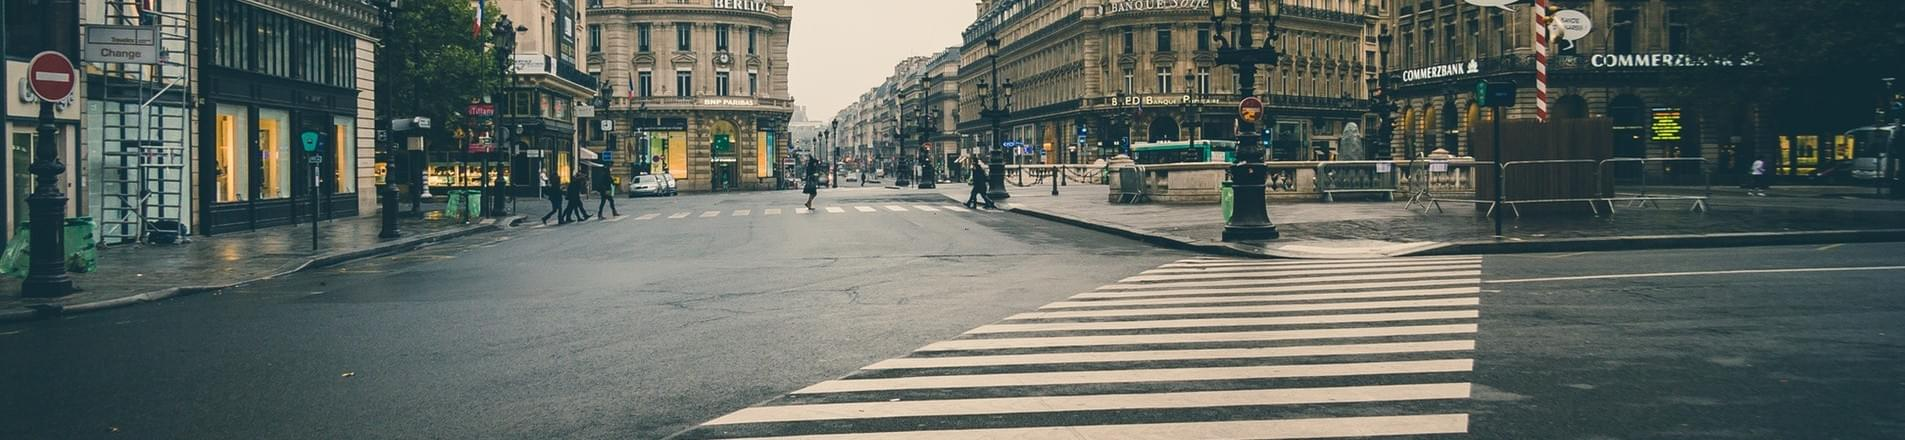 Living Streets: Inclusivity is needed on our streets